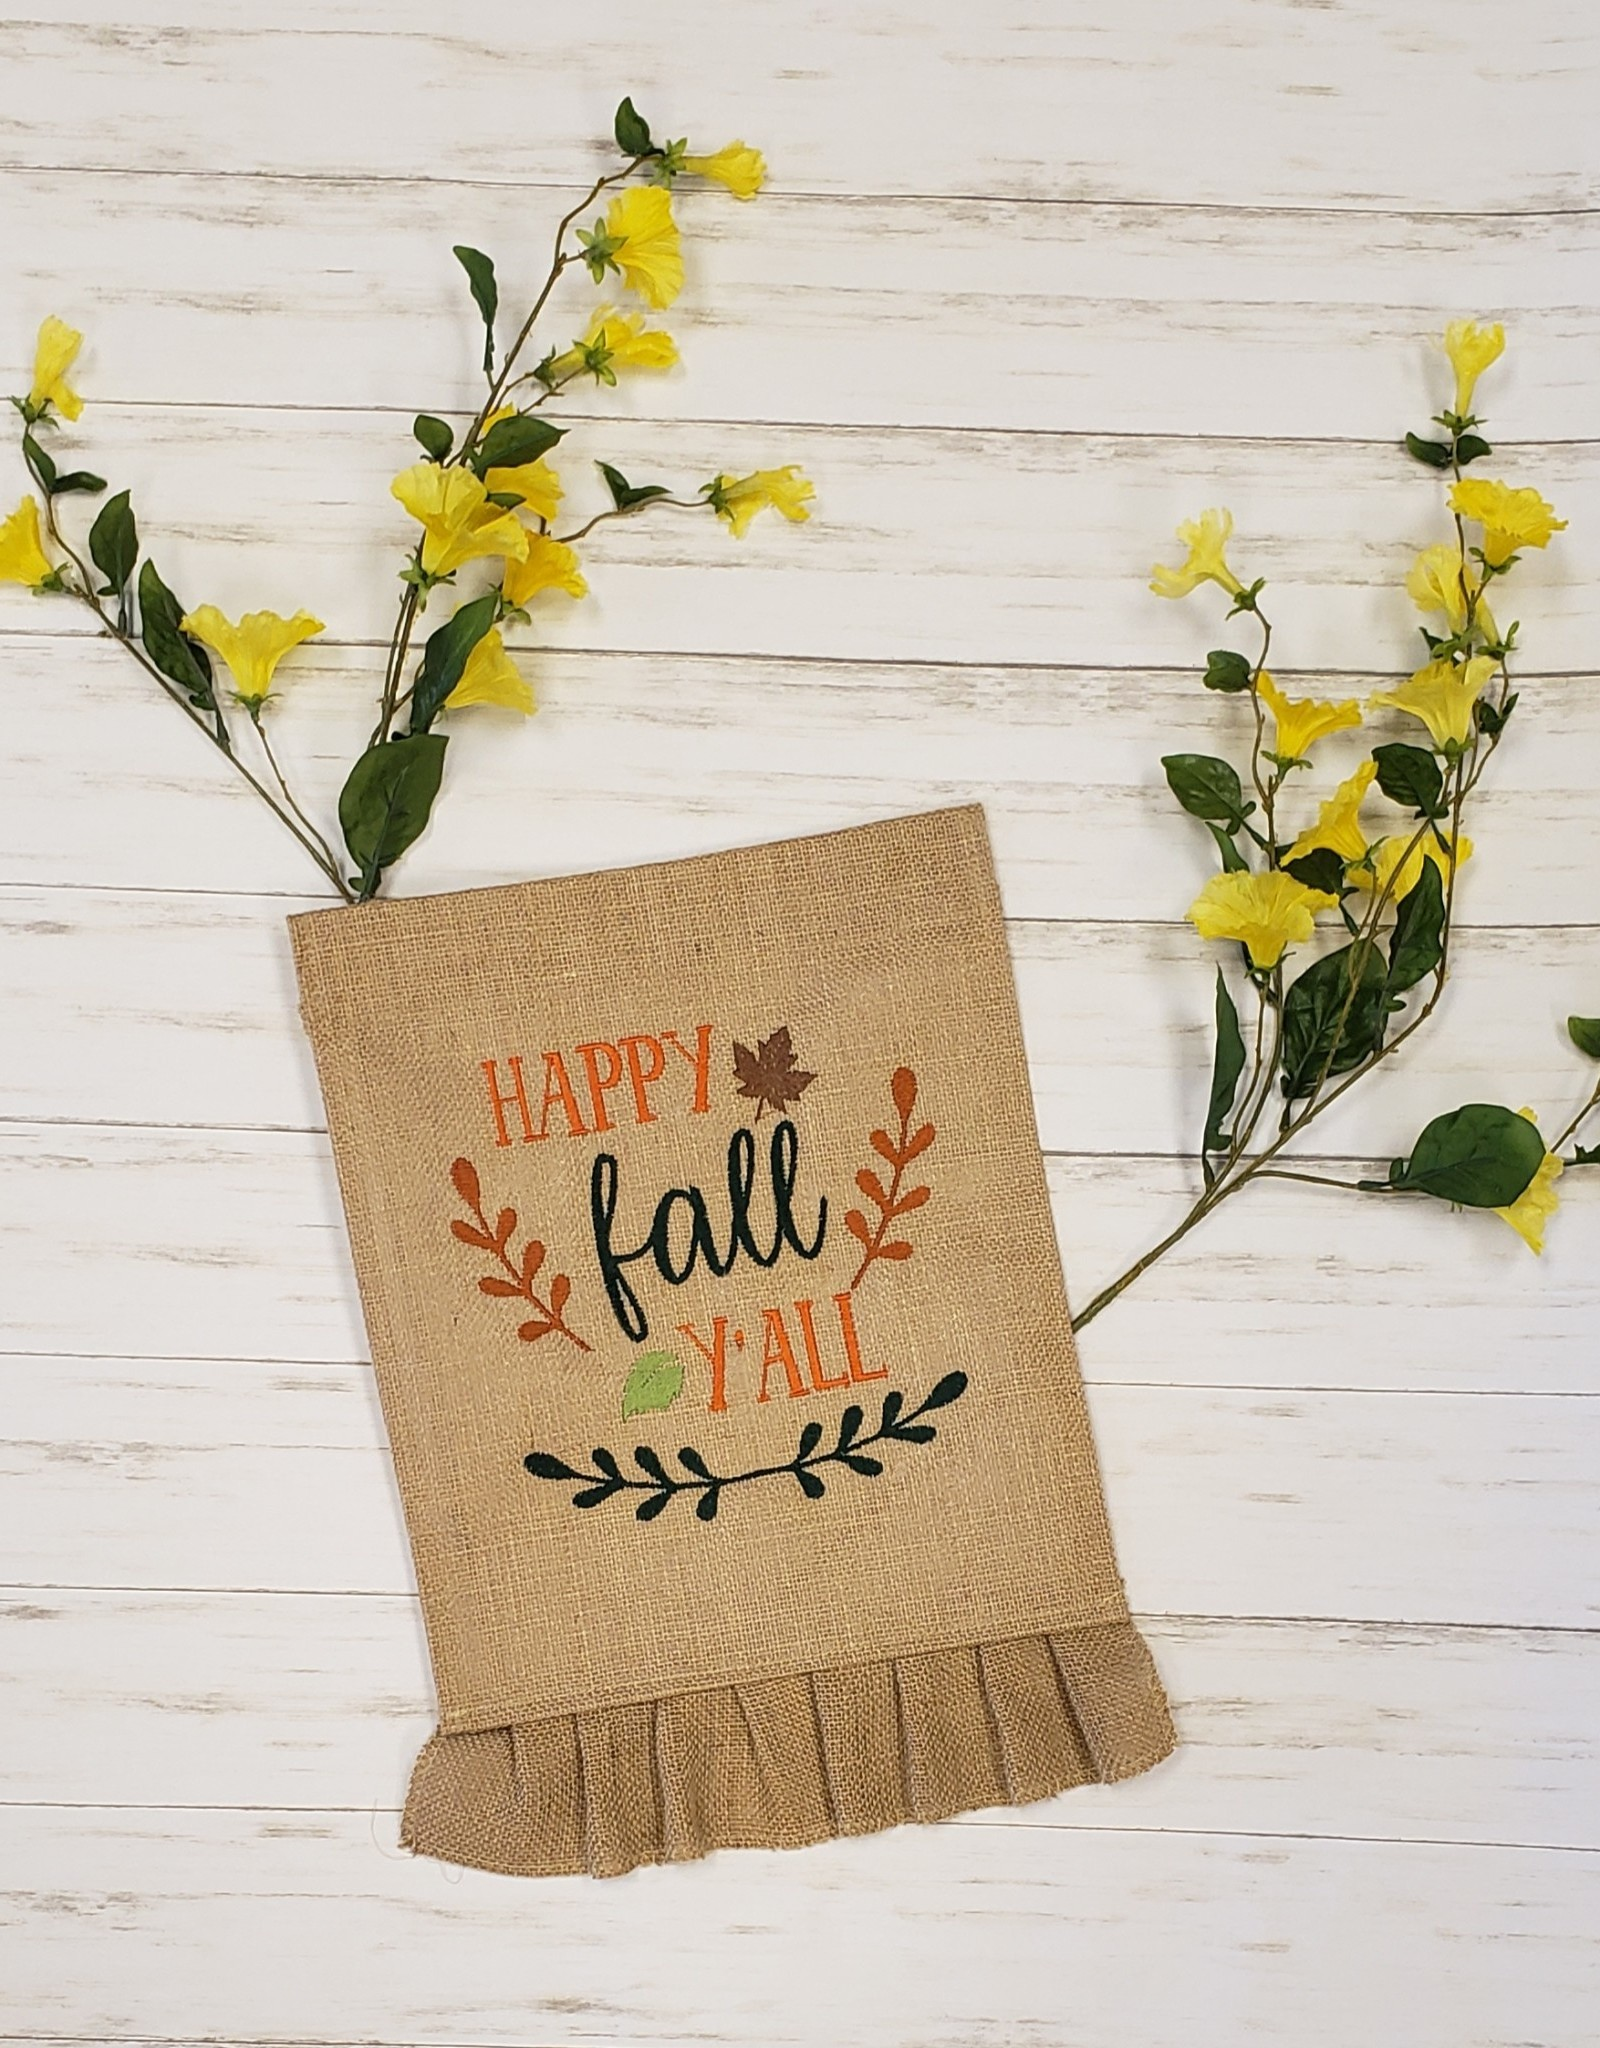 Happy Fall Y'all Ruffle Burlap Garden Flag